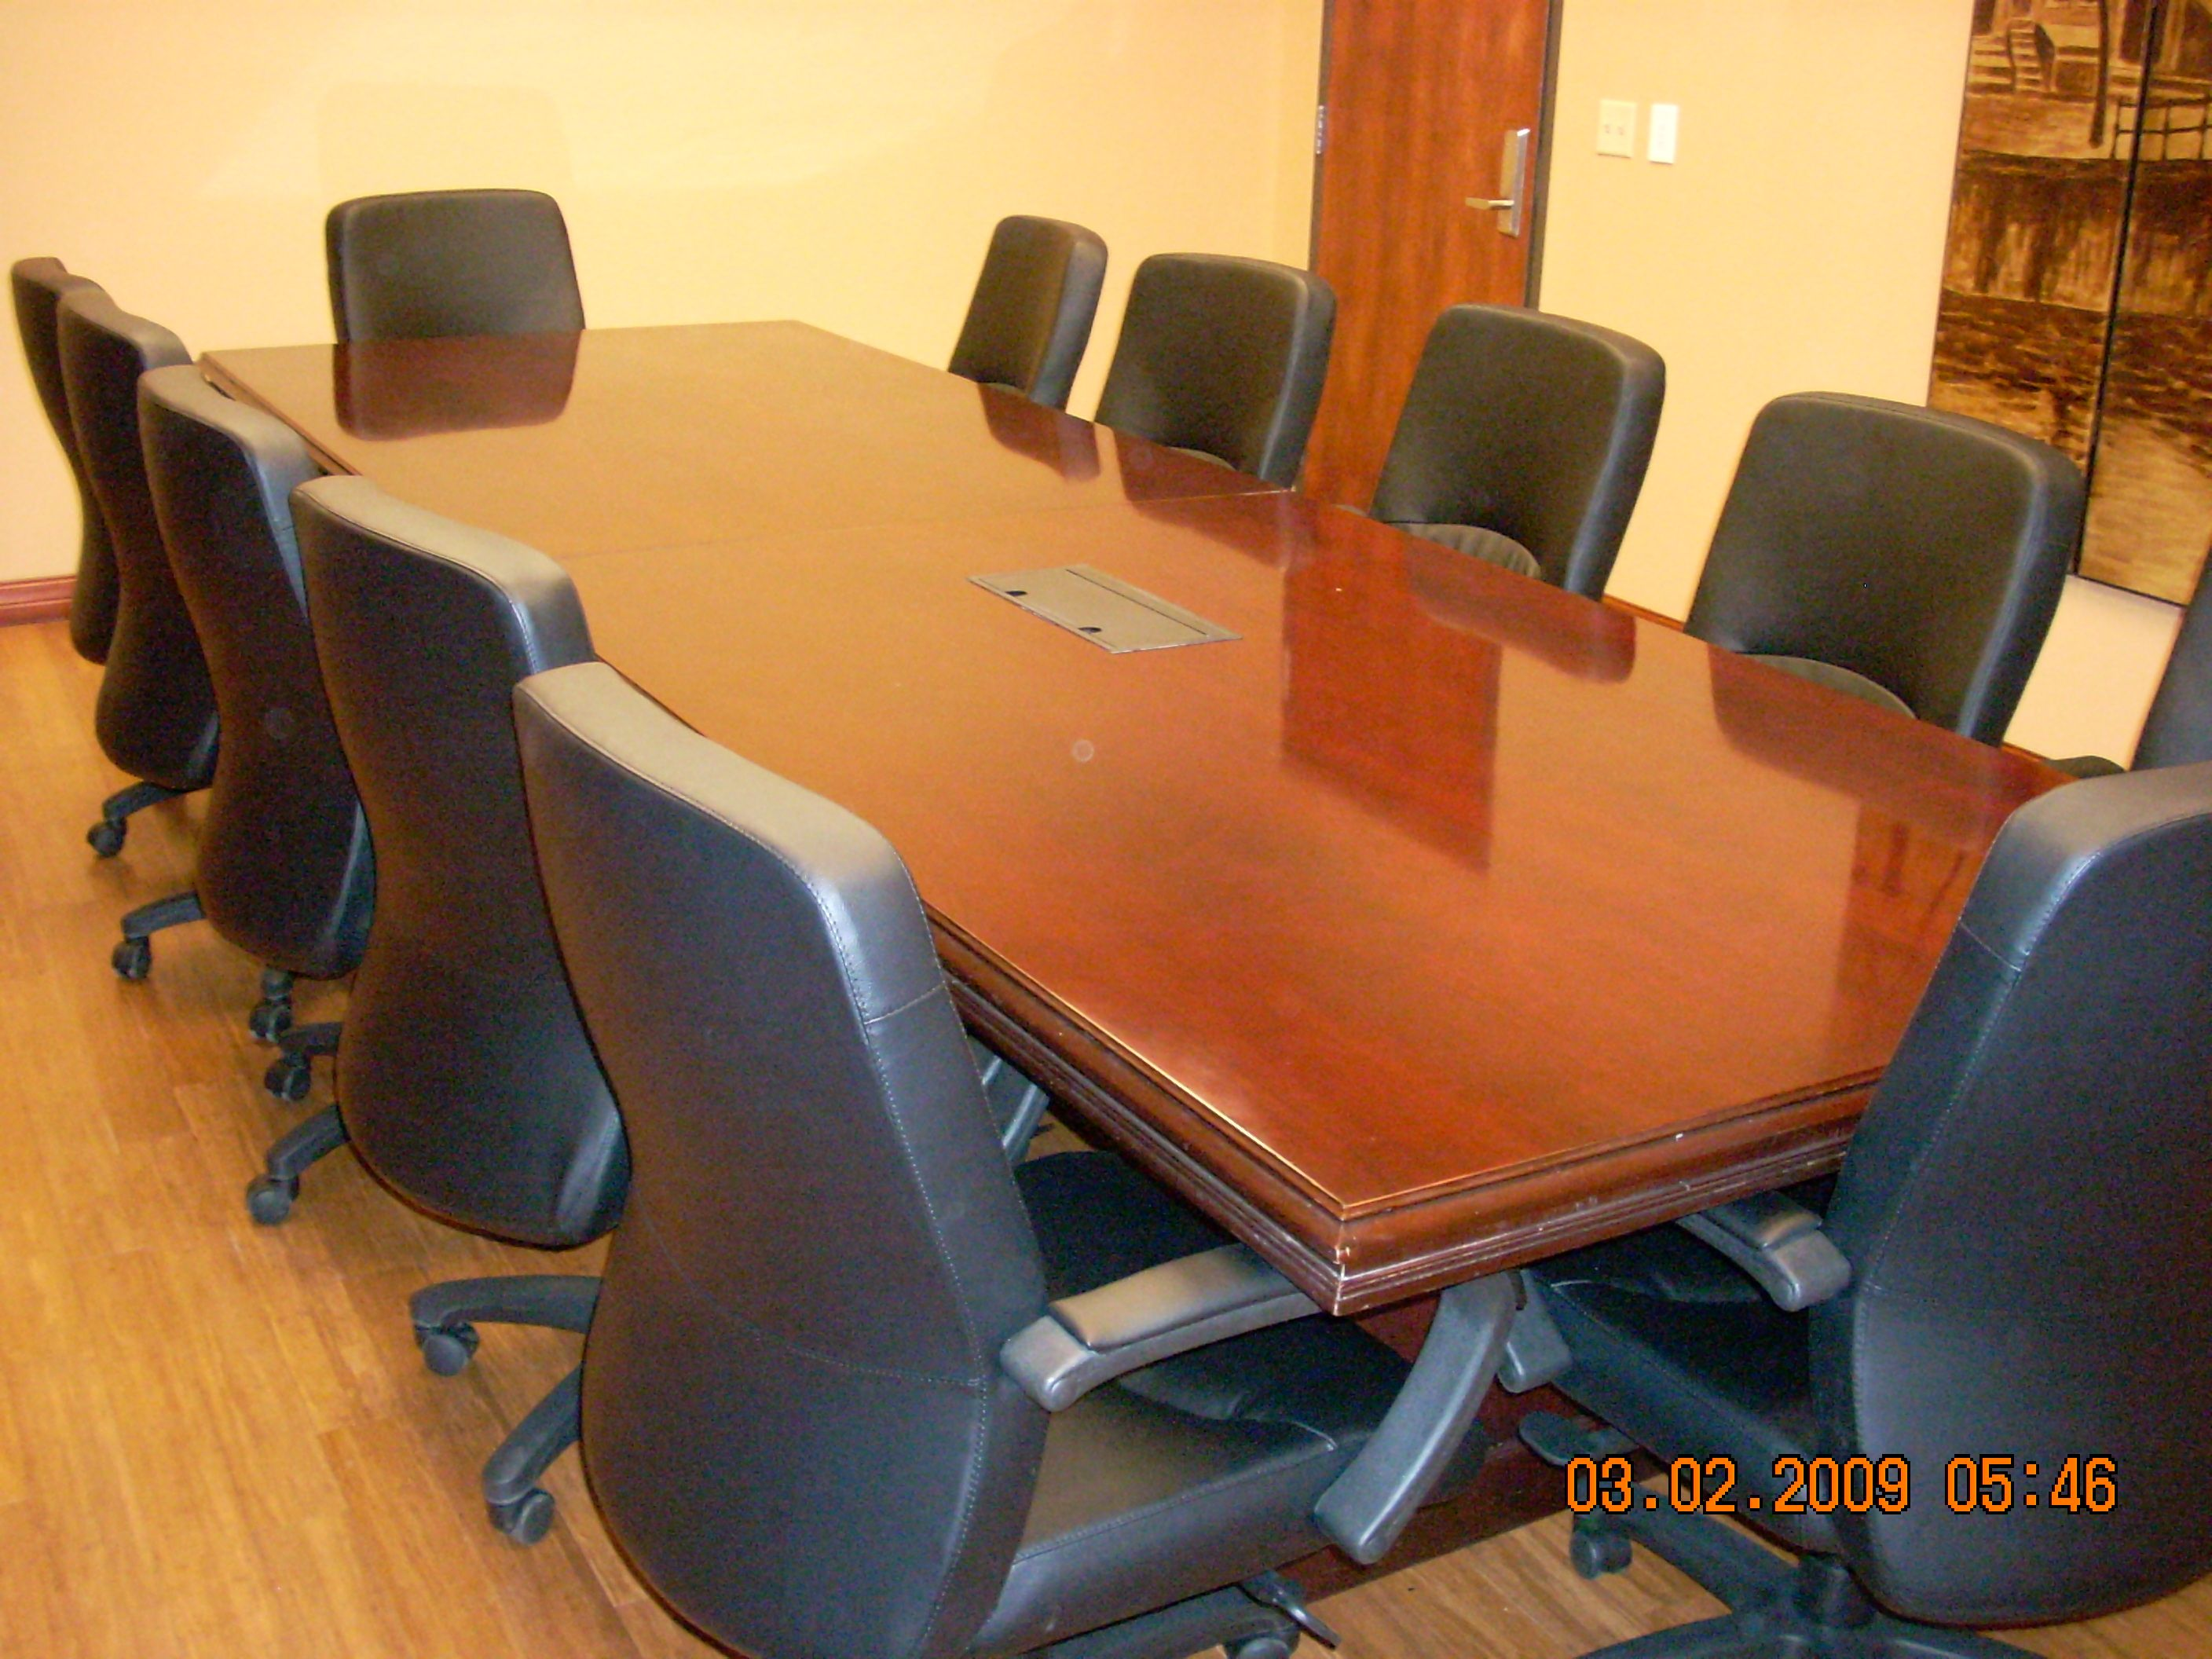 Genial ADVANCED PAIN TECHNOLOGIES   WICHITA, KS   WE TOTALLY REFINISHED THERE  CONFERENCE ROOM TABLE.